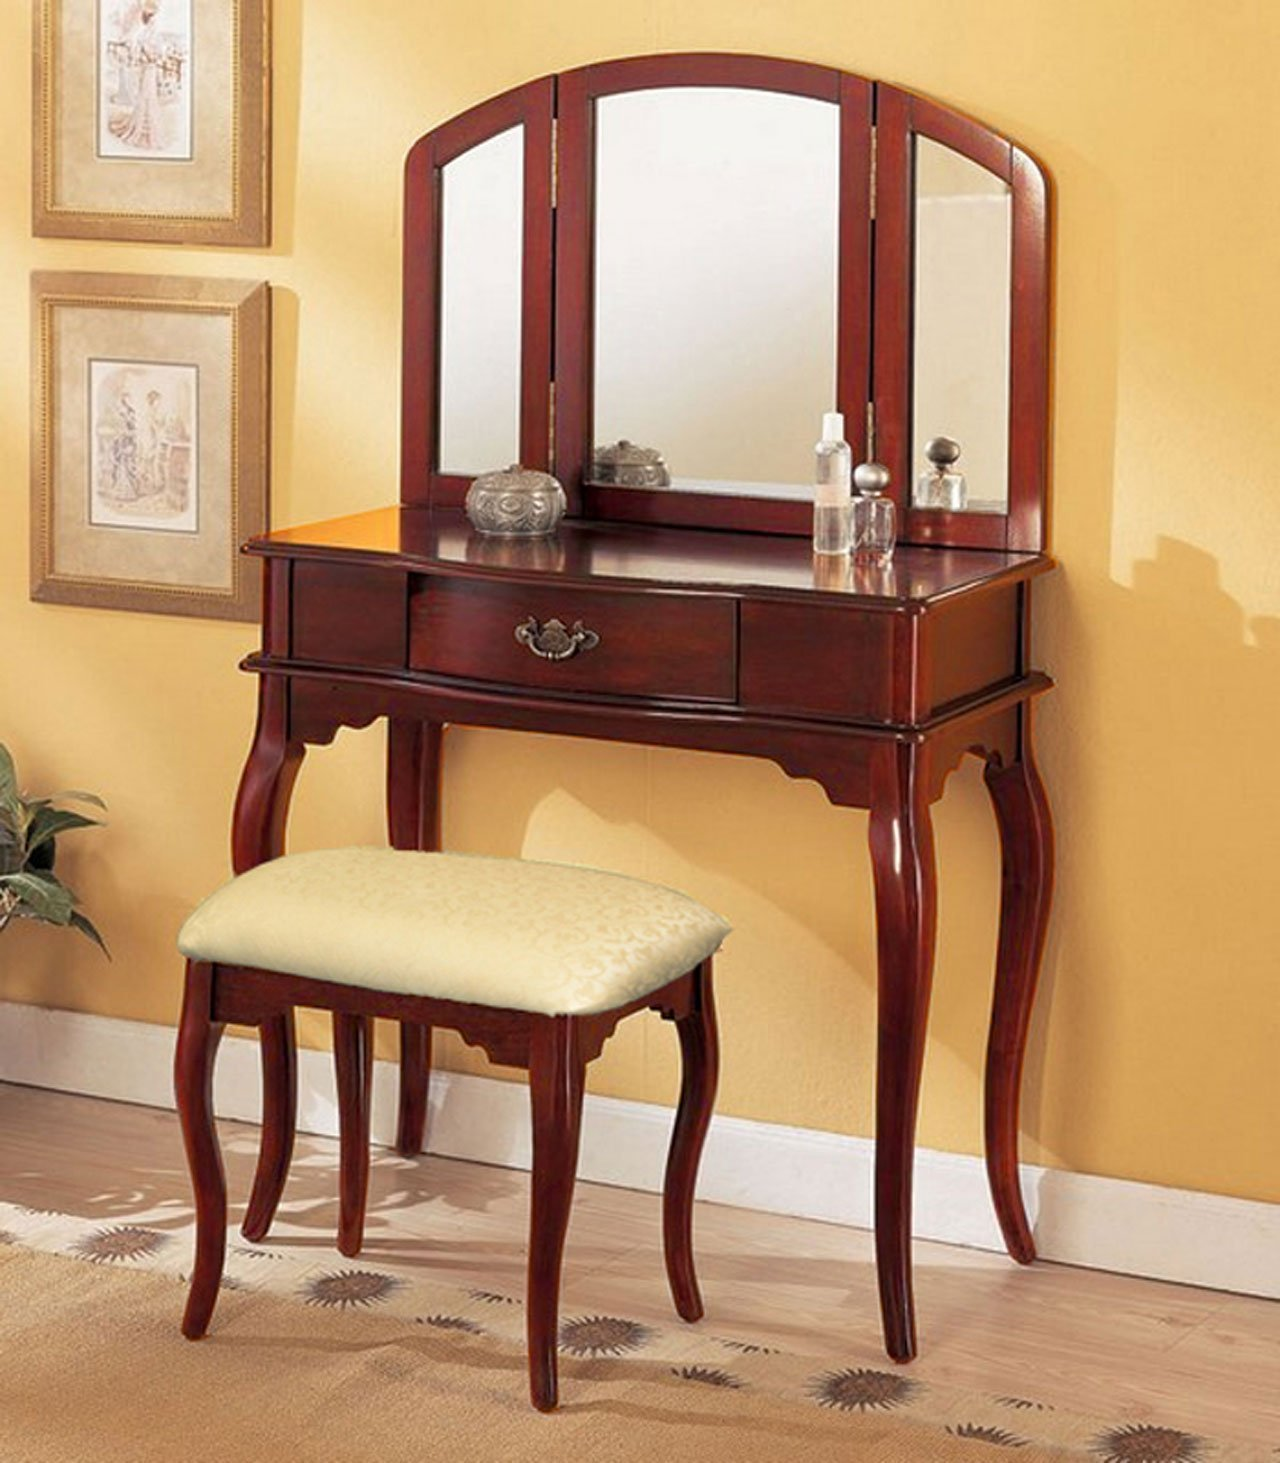 Vanity Mirror with Chair | Mirrored Vanity Set | Bedroom Vanity Table with Drawers